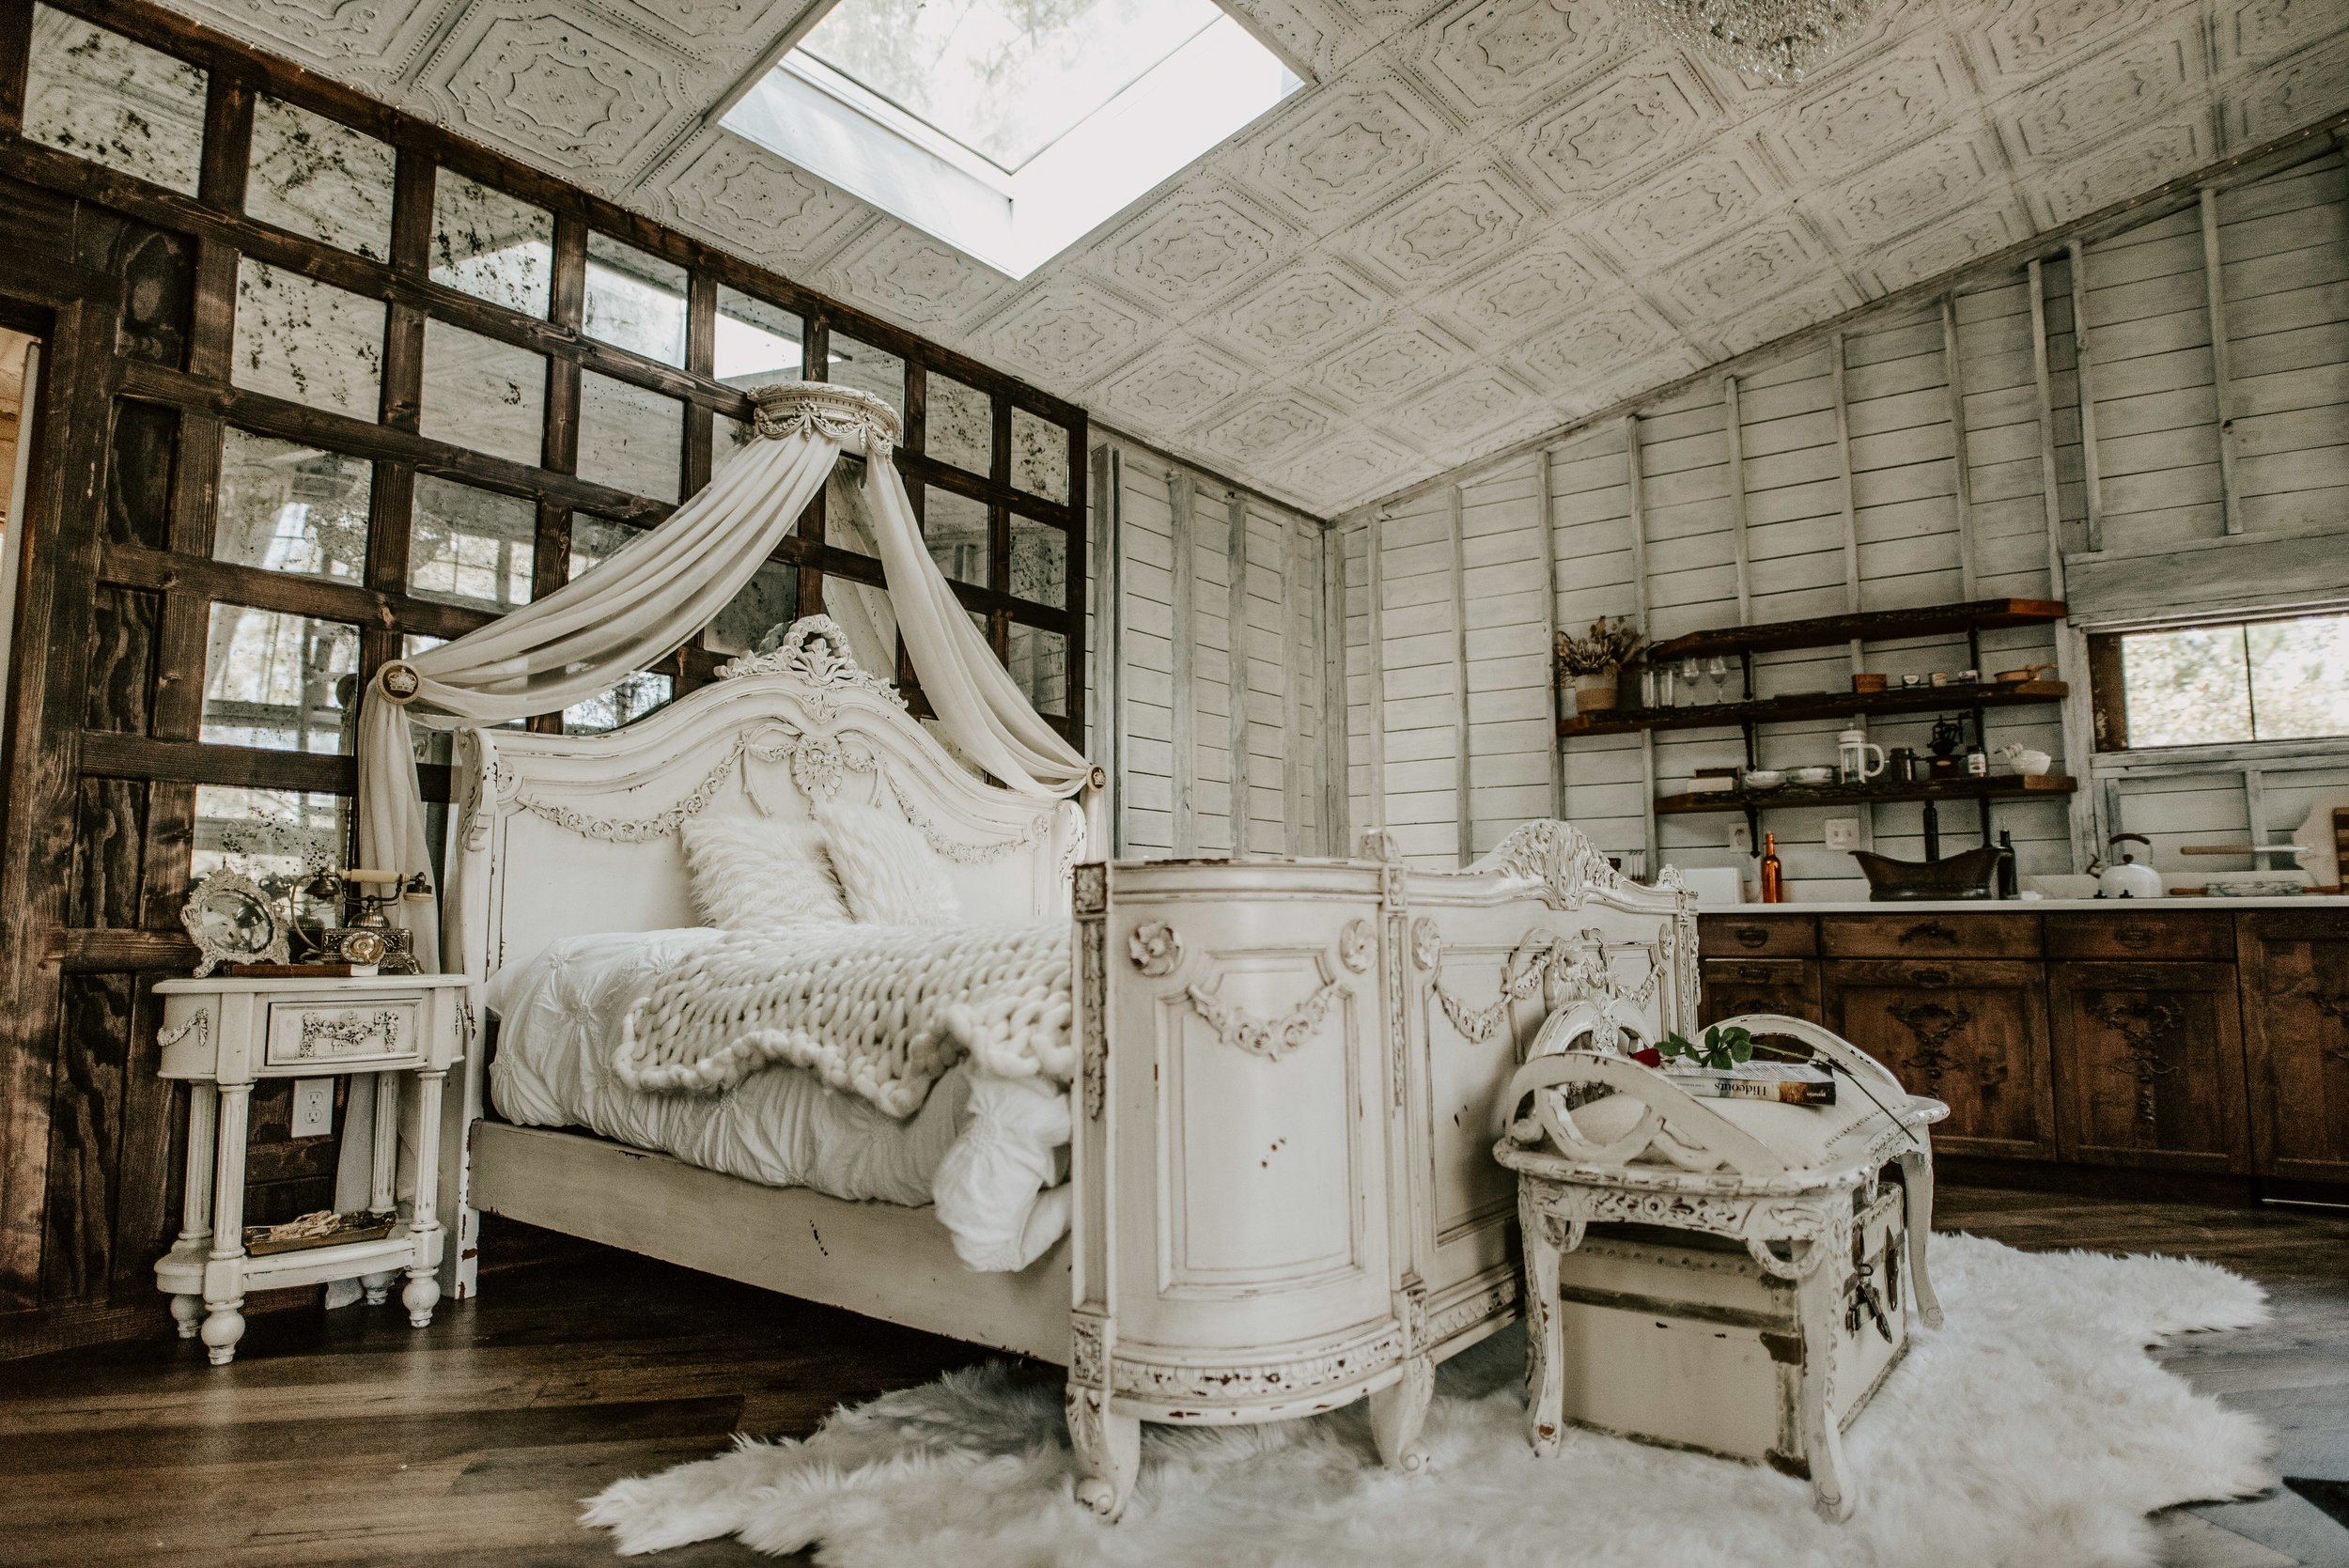 THE HONEYMOON TREEHOUSE - Romantic, luxurious, timeless, waterfrontCHARLESTON, SC(Featured on southern charm)